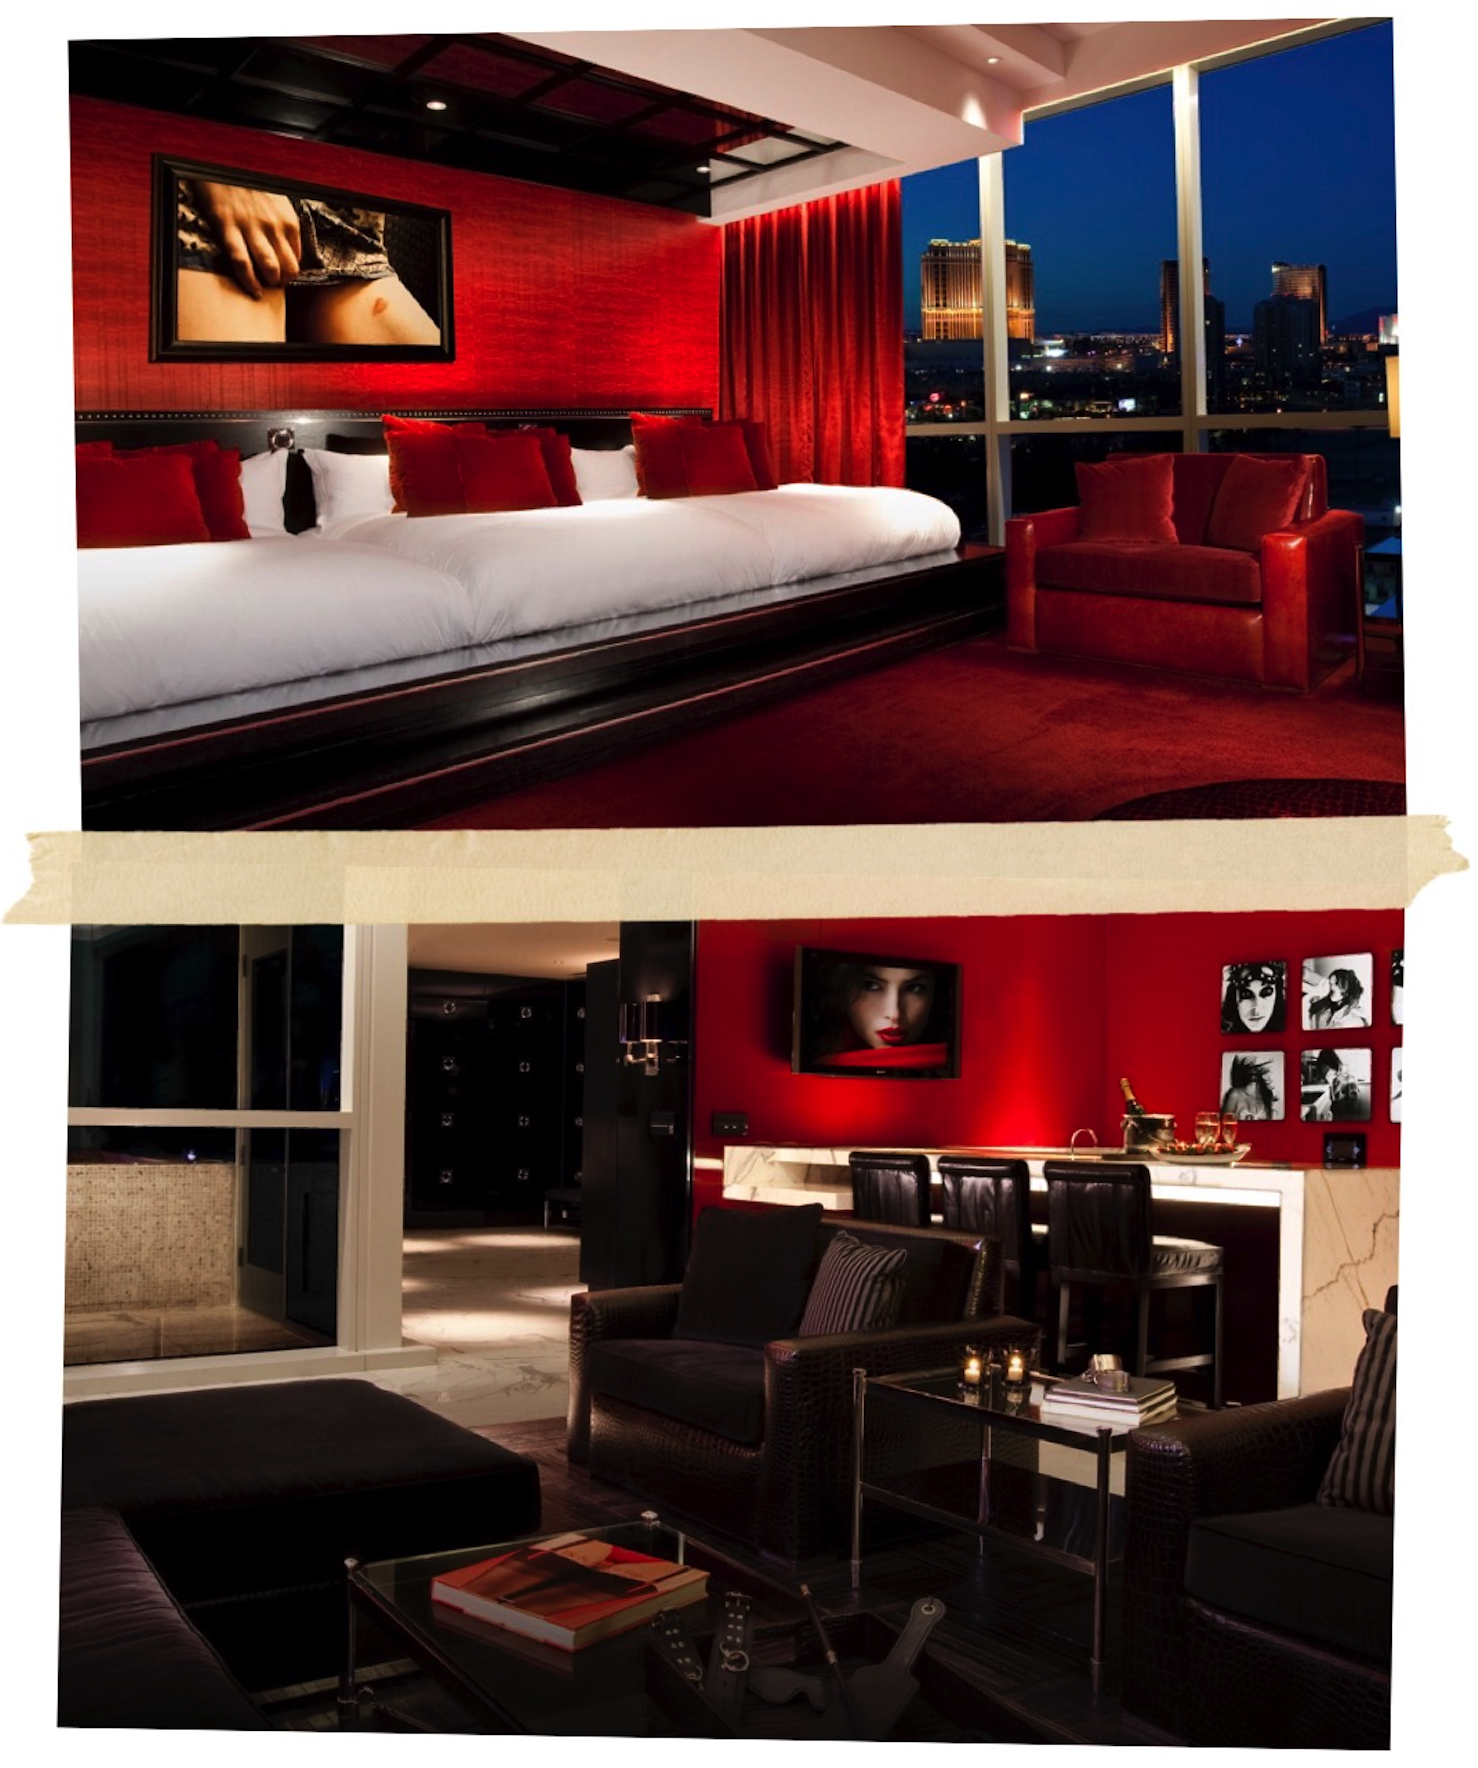 places to stay in las vegas - best las vegas hotels - list of las vegas hotels - best area to stay in las vegas - list of las vegas hotels - best places to stay in vegas on the strip - where to stay in vegas first time - which vegas hotel should i stay at - hard rock hotel - provocateur suite